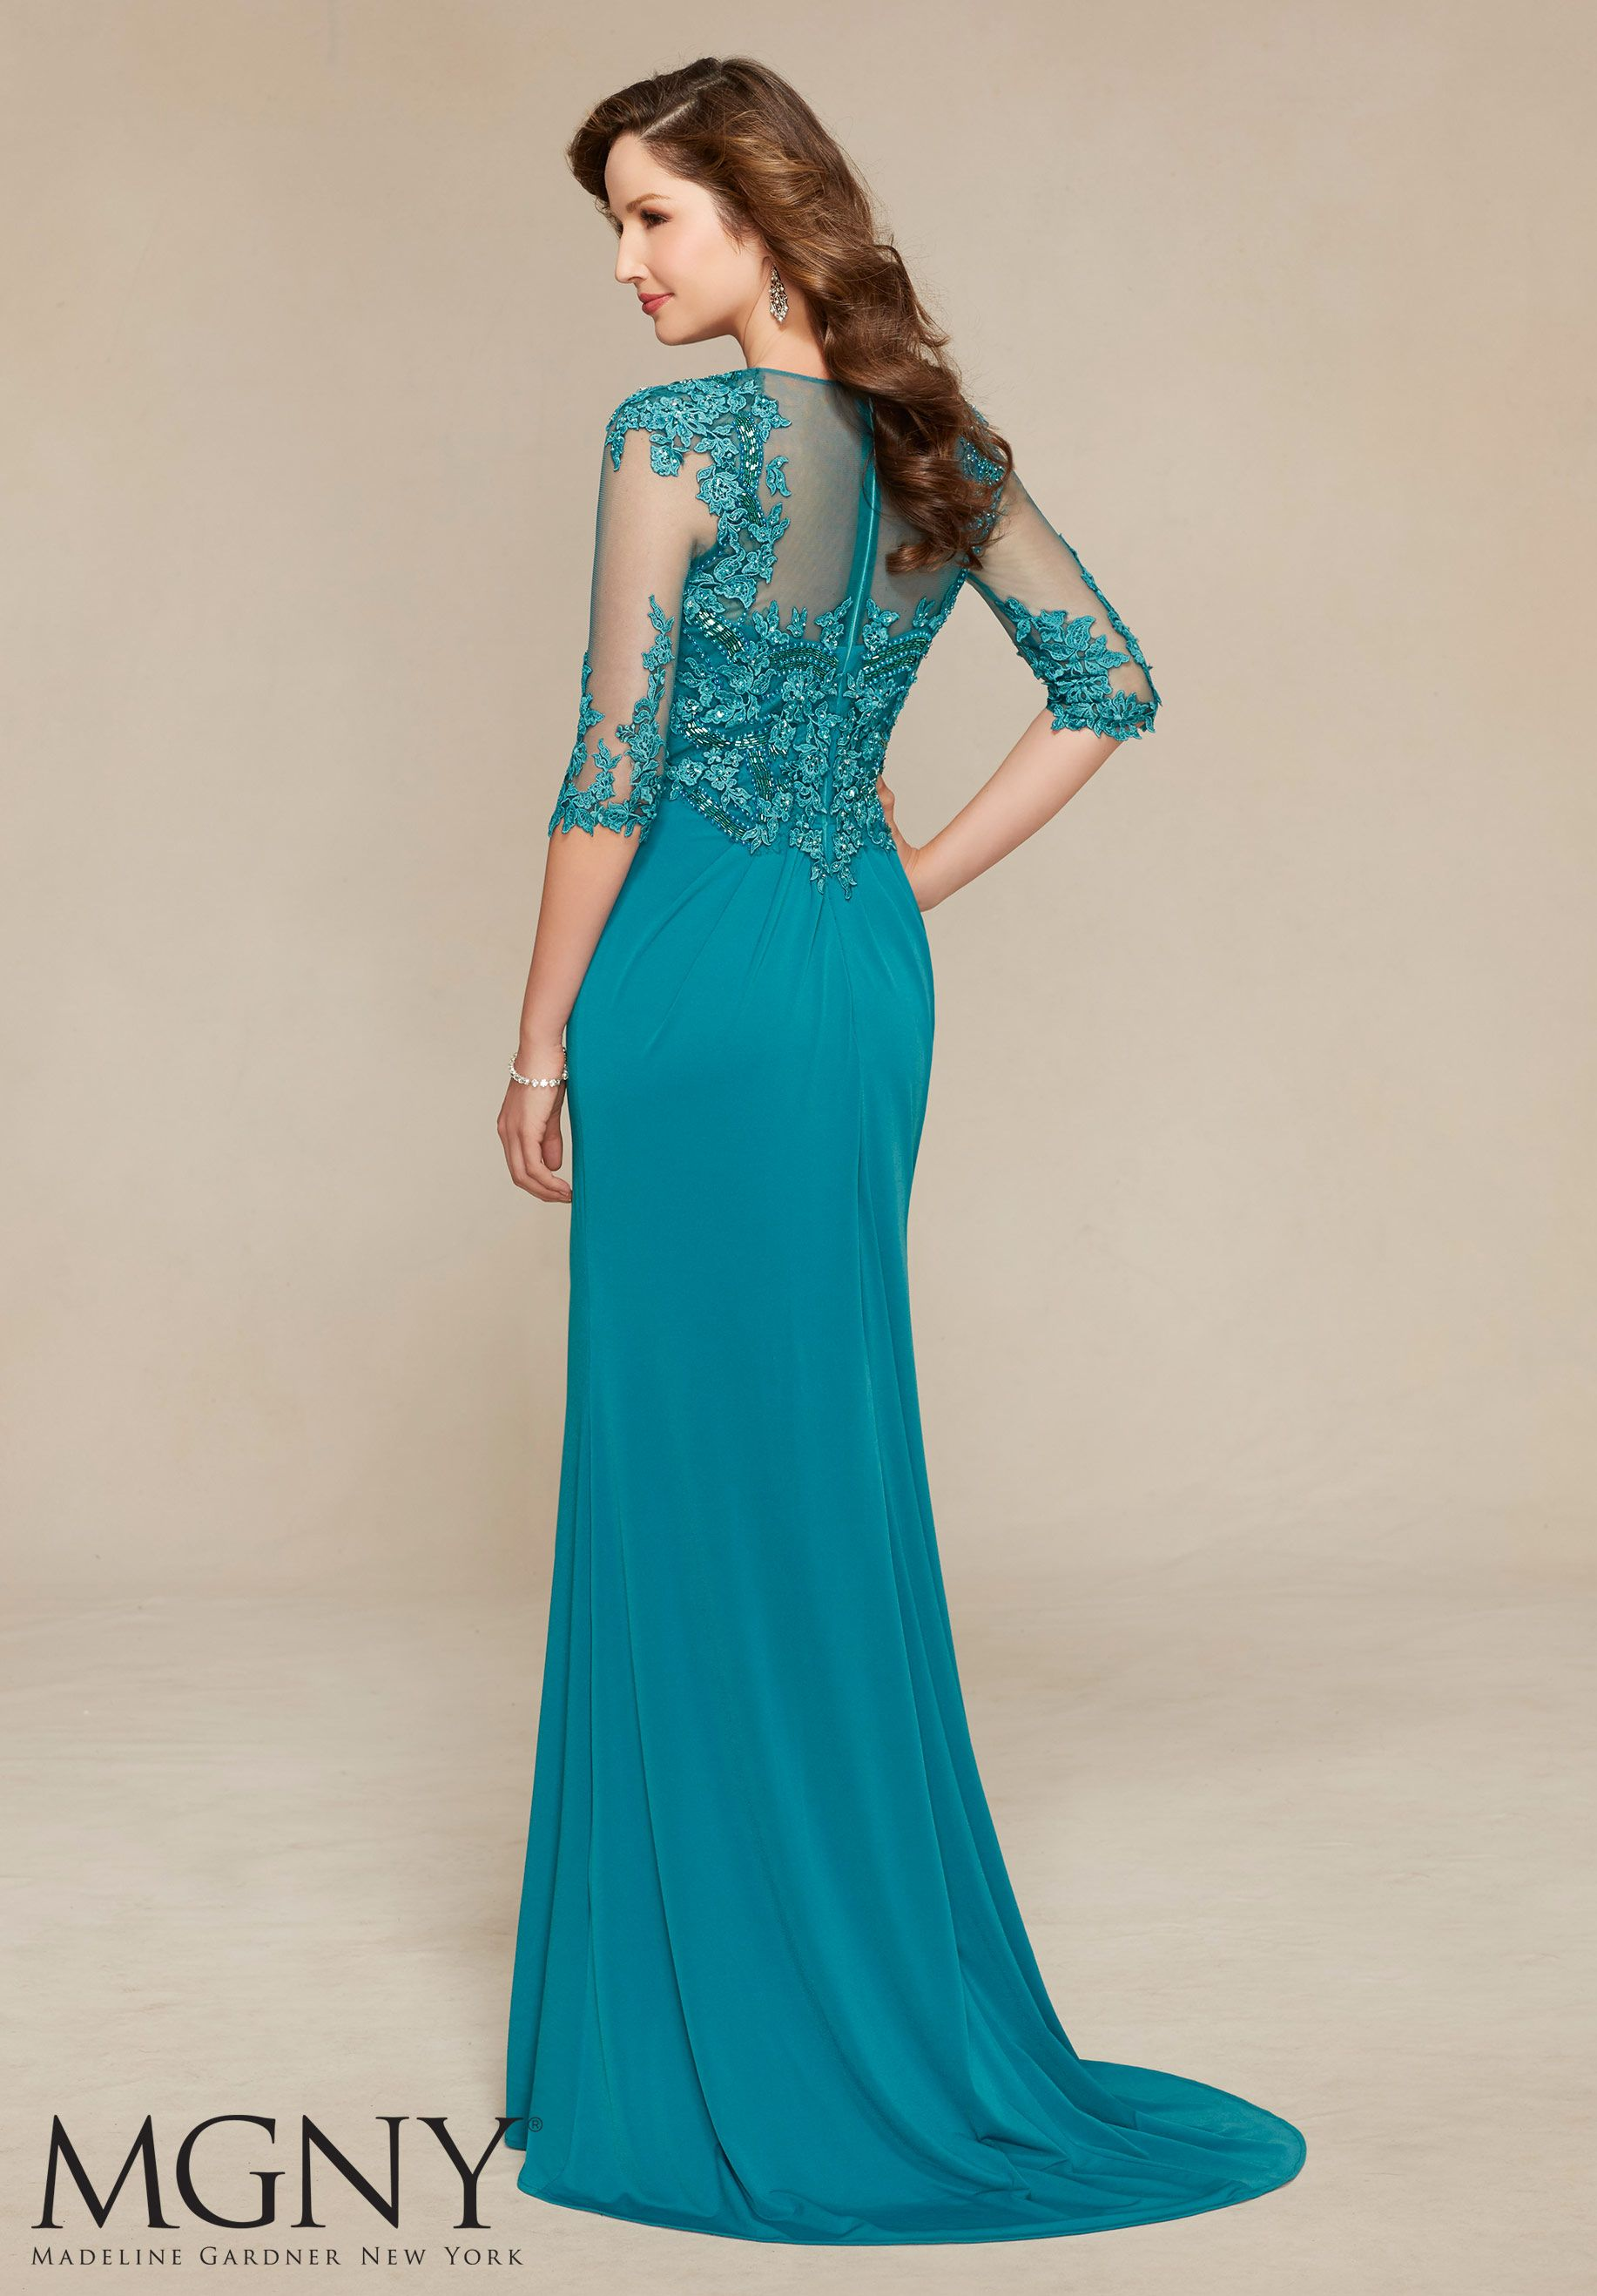 Jersey with Venice Lace Appliqués and Beading Design Evening Gown ...